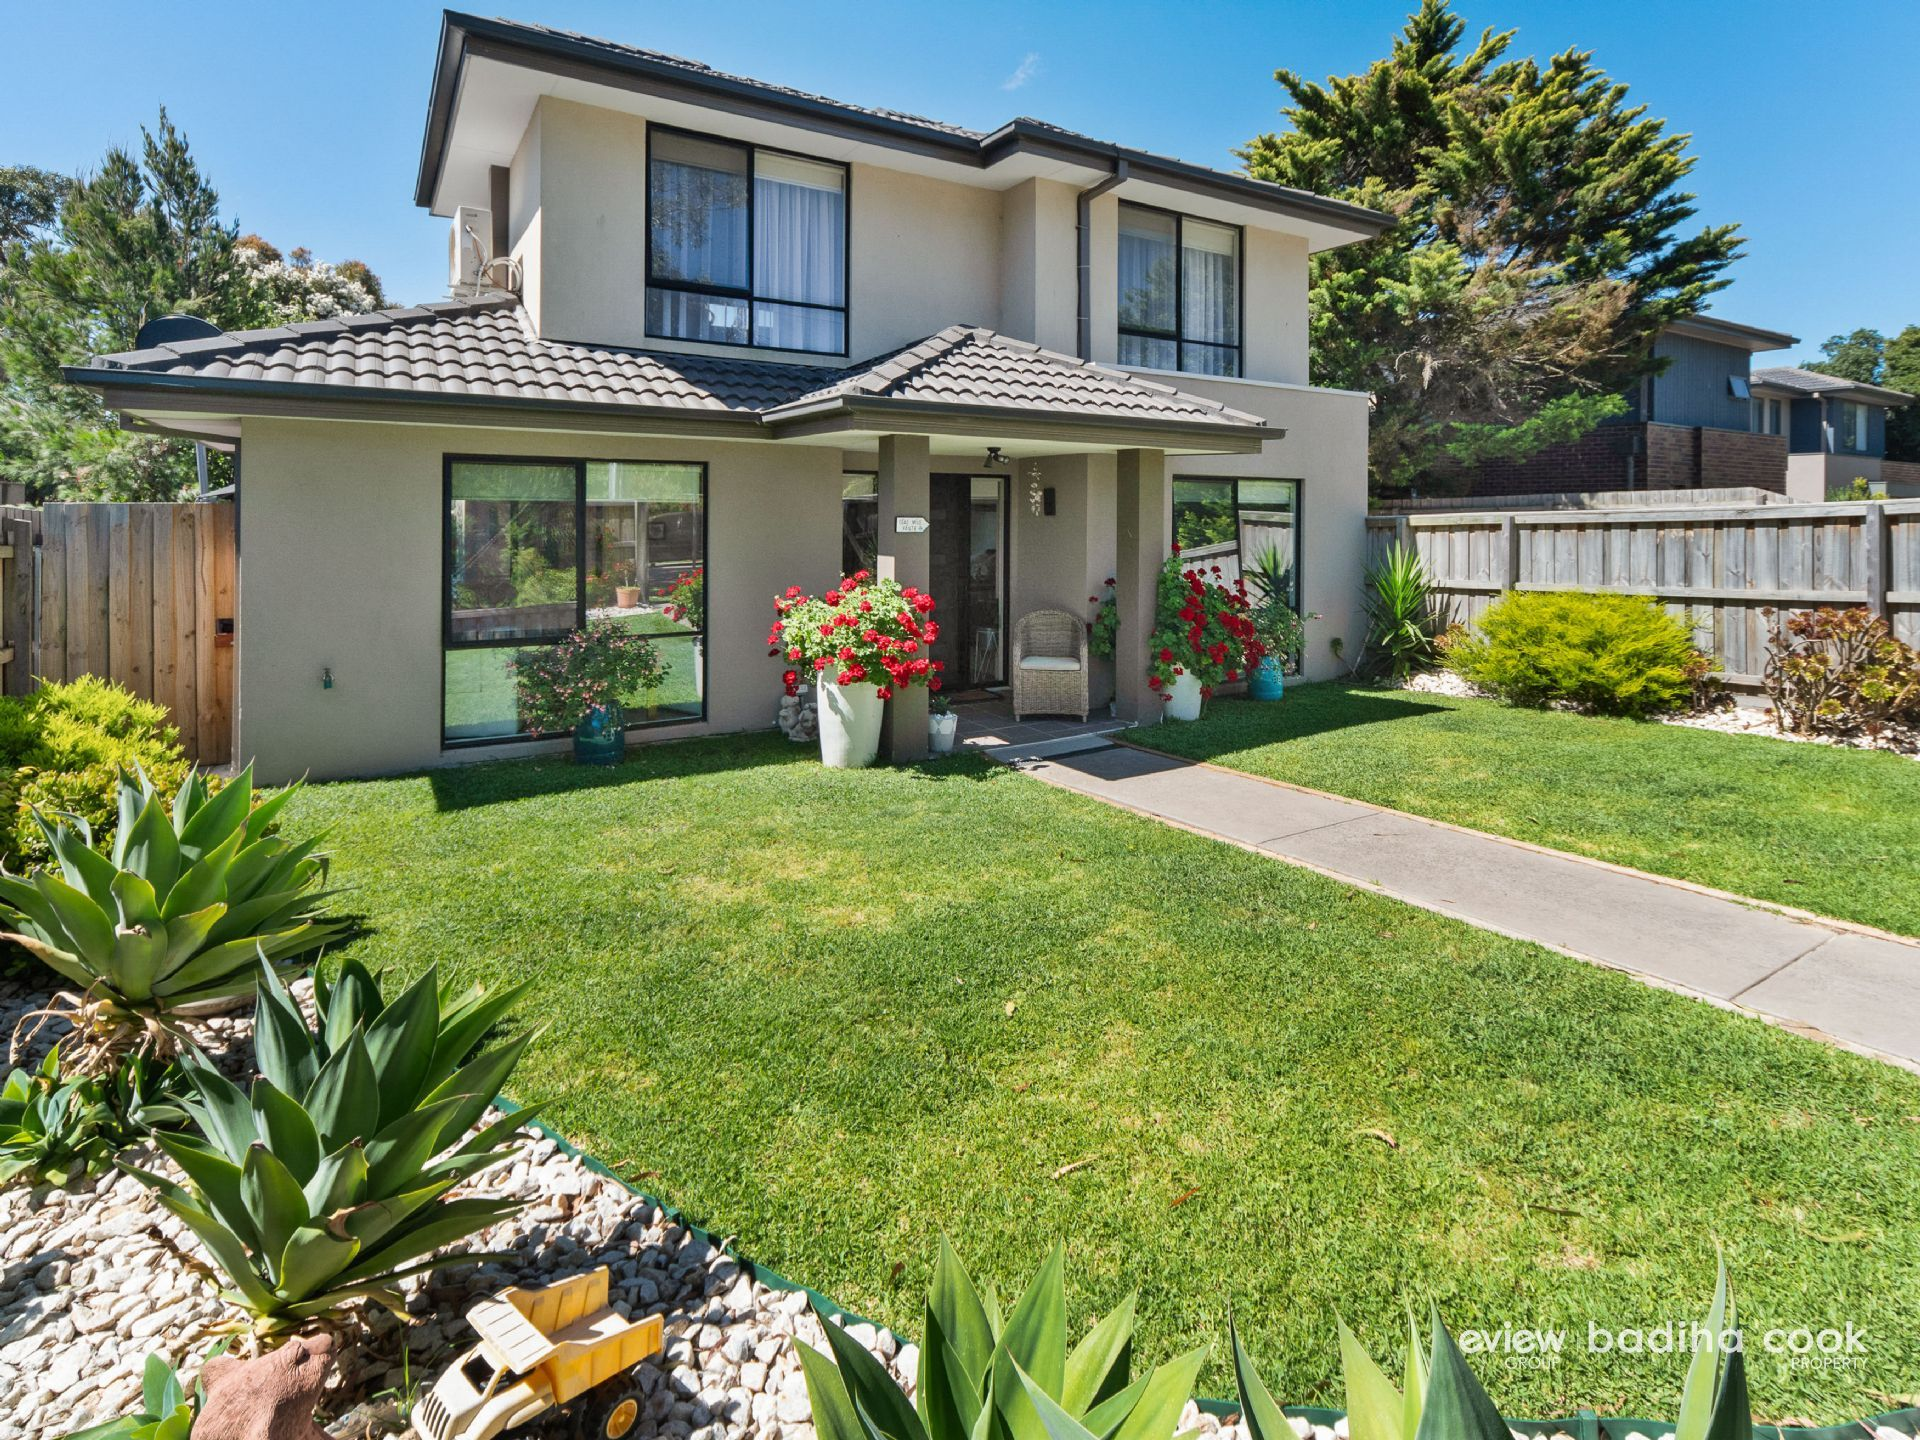 1/16 Sanders Road, FRANKSTON SOUTH, VIC, 3199 - Image